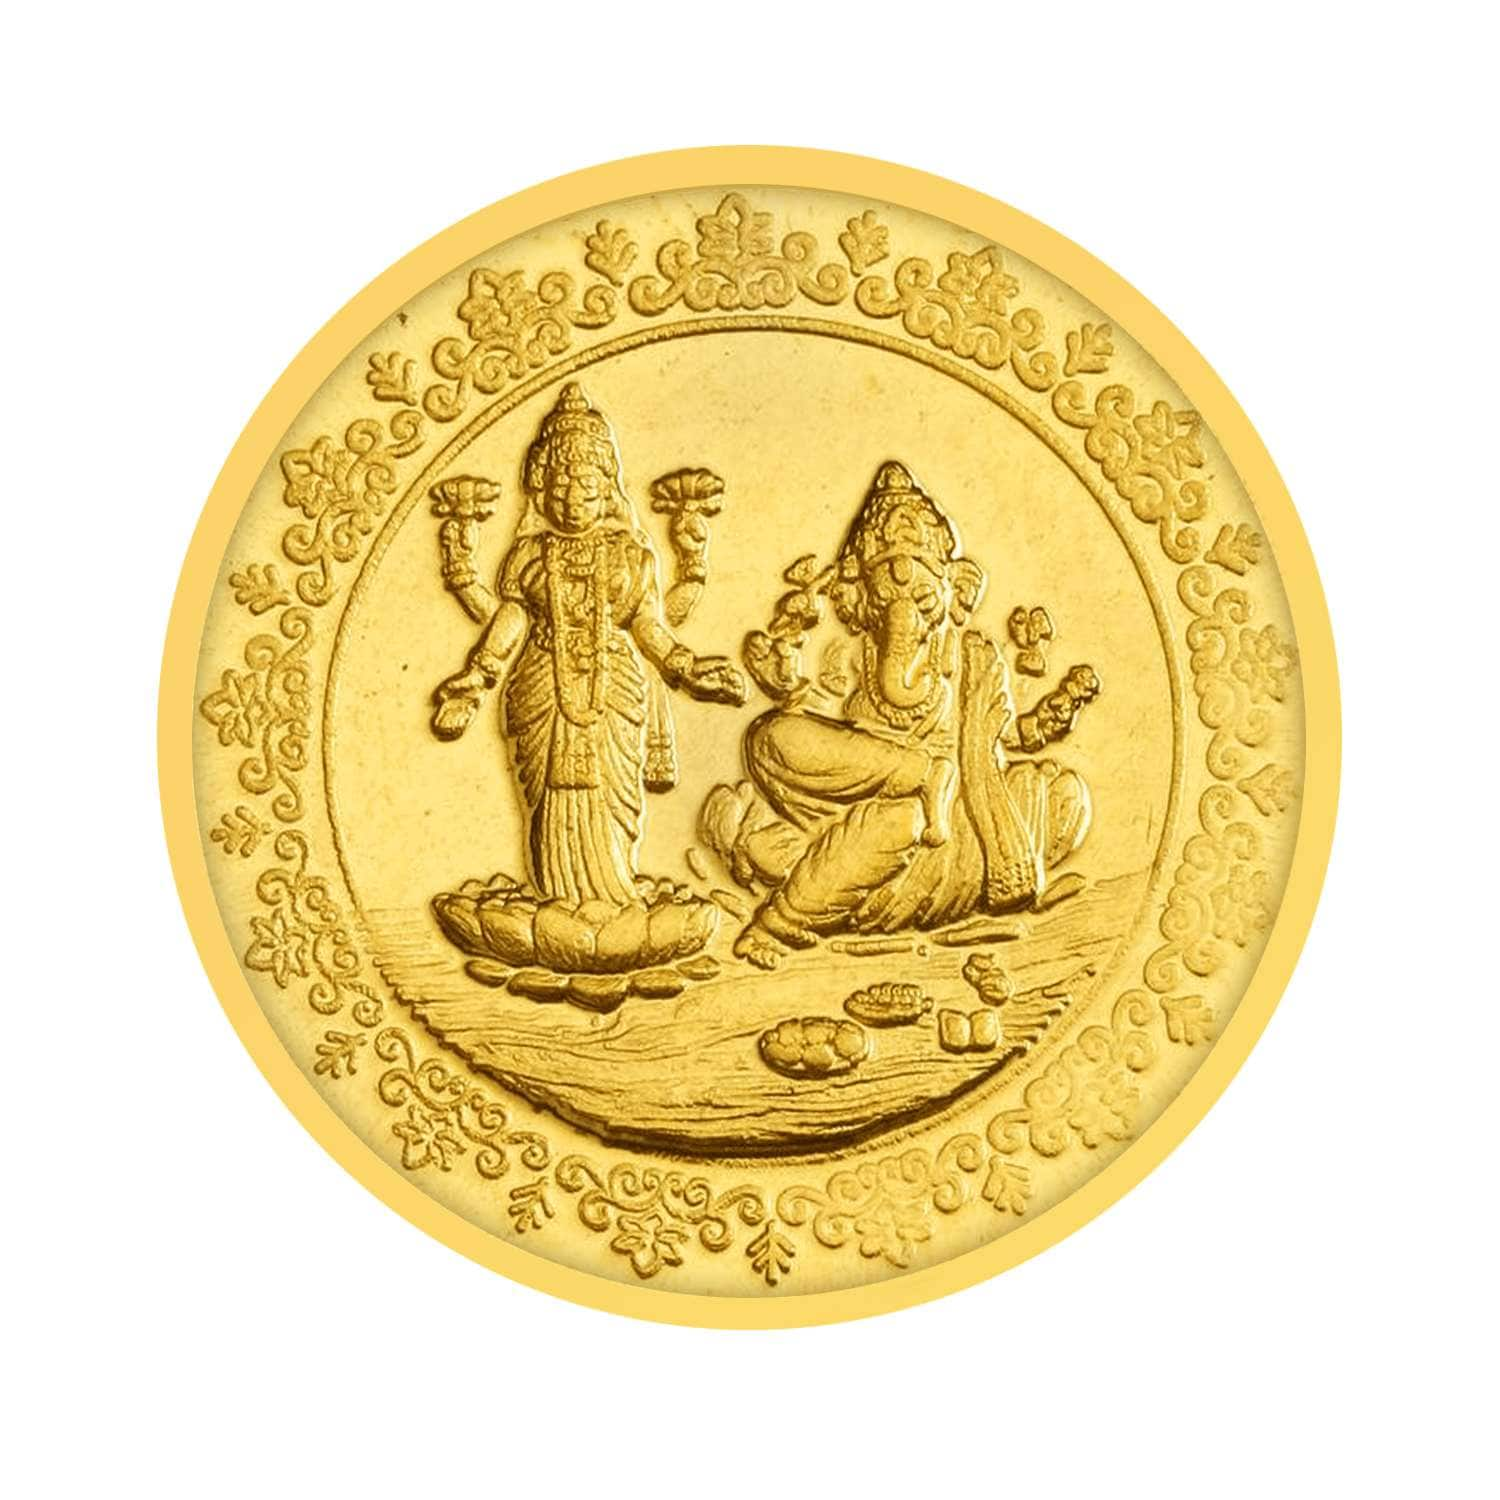 Special Offer 50 Gram Silver Coin Price Tanishq Up To 74 Off